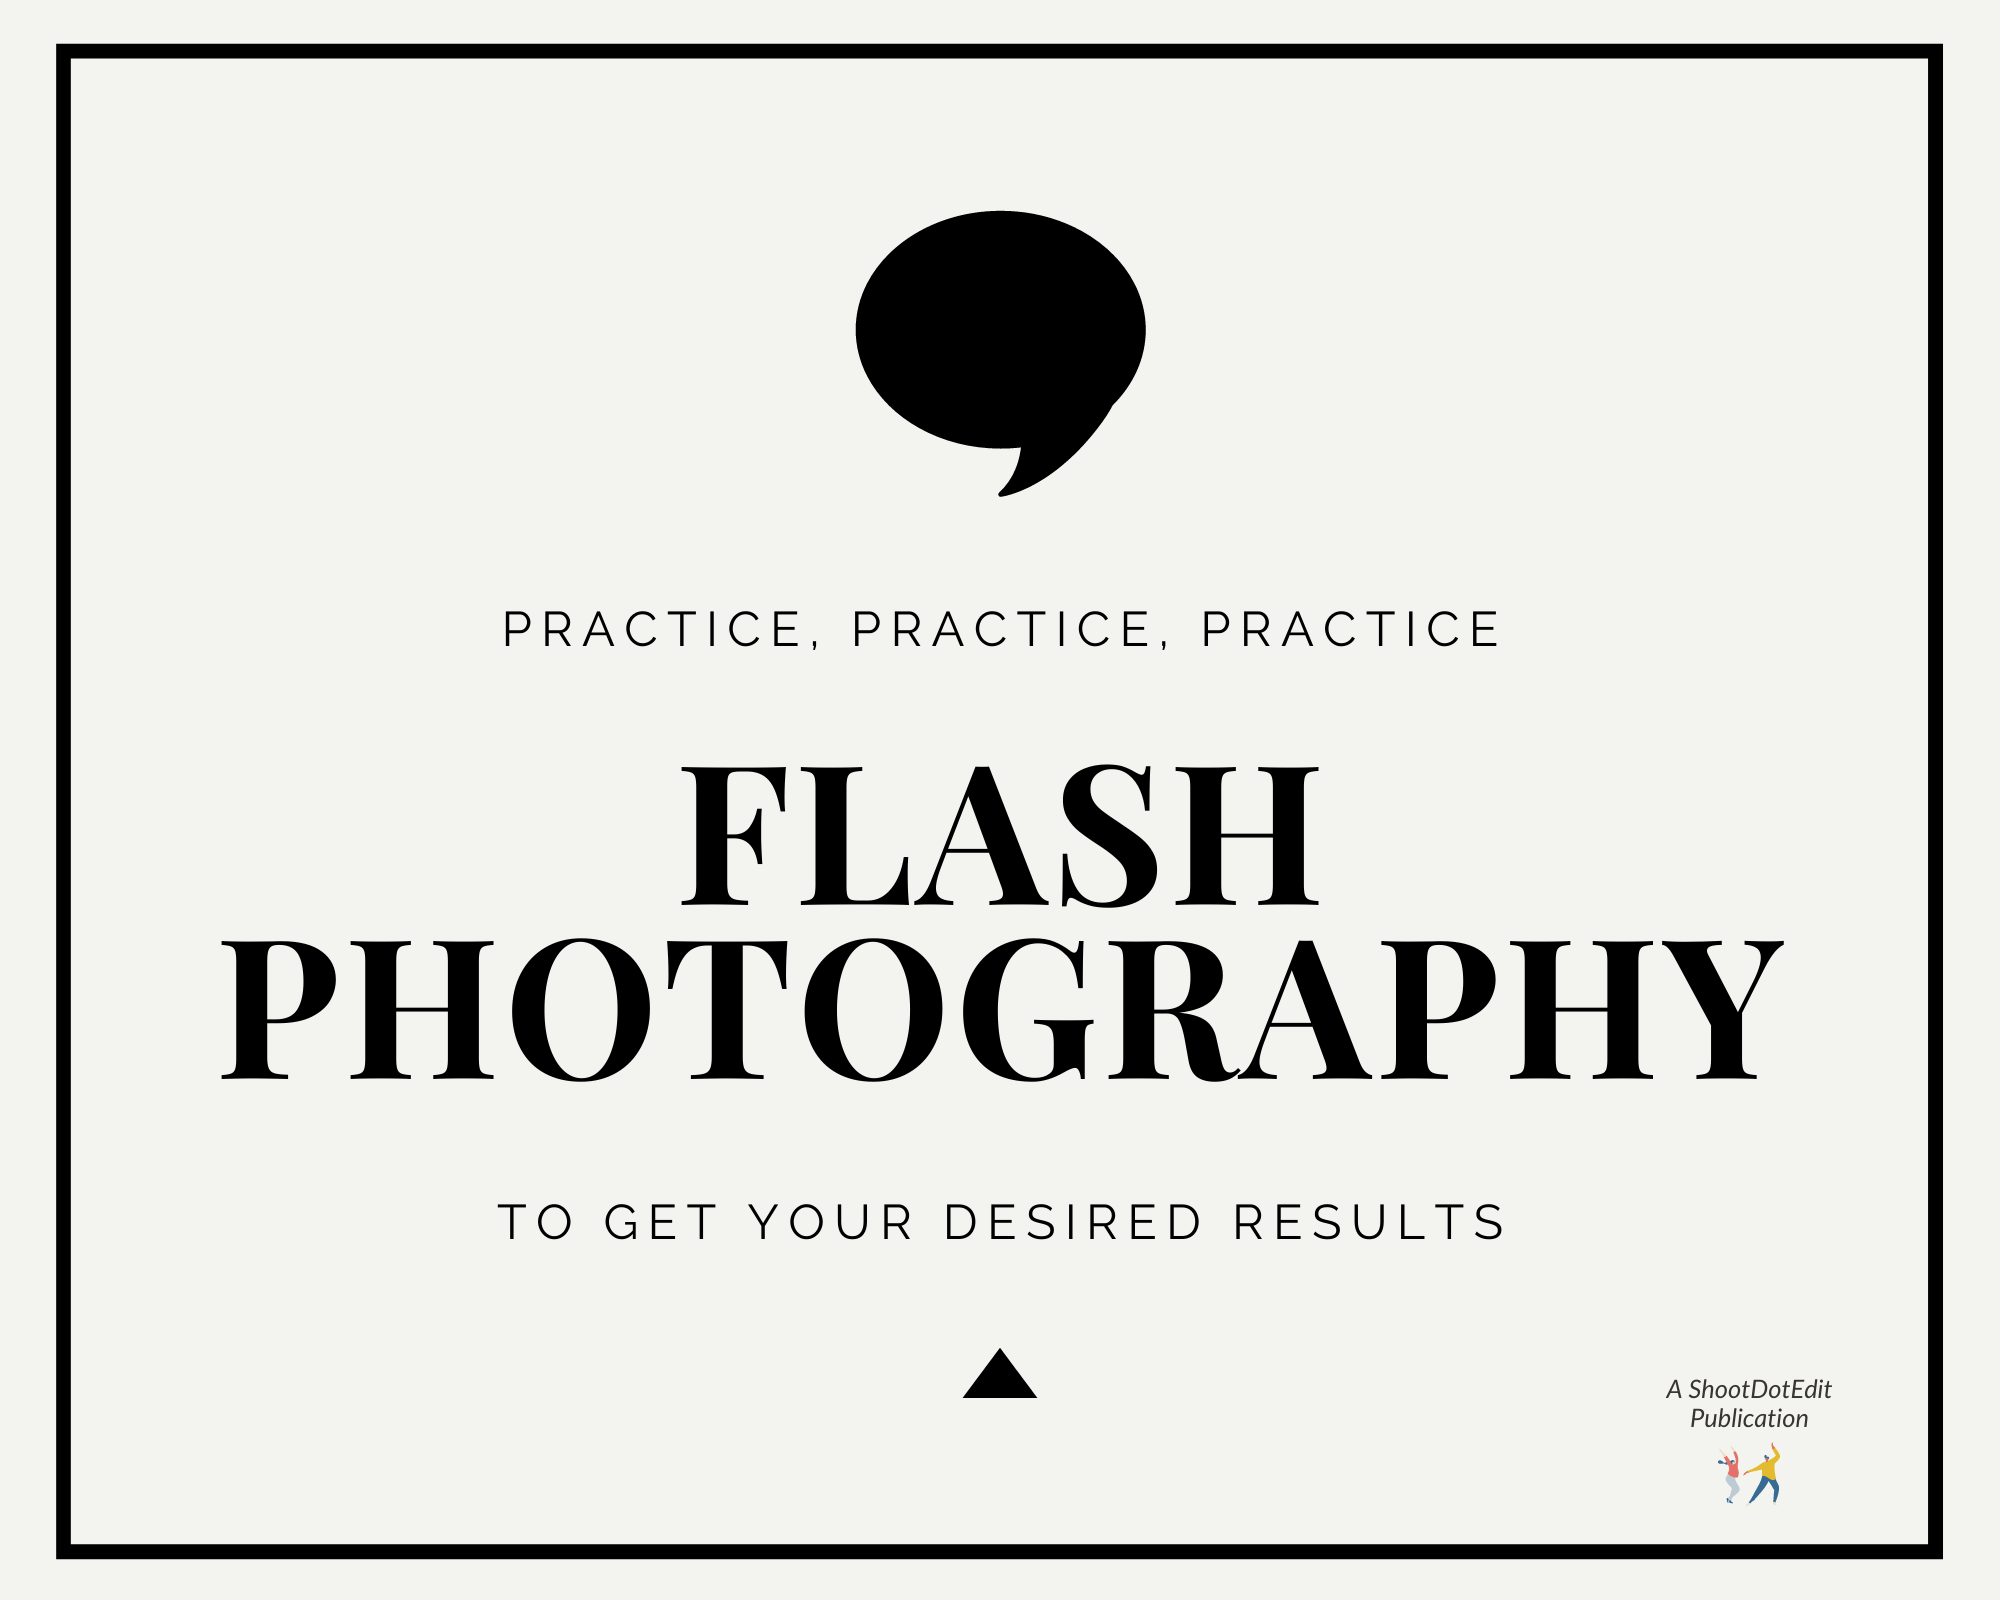 Infographic stating practice, practice, practice flash photography to get your desired results